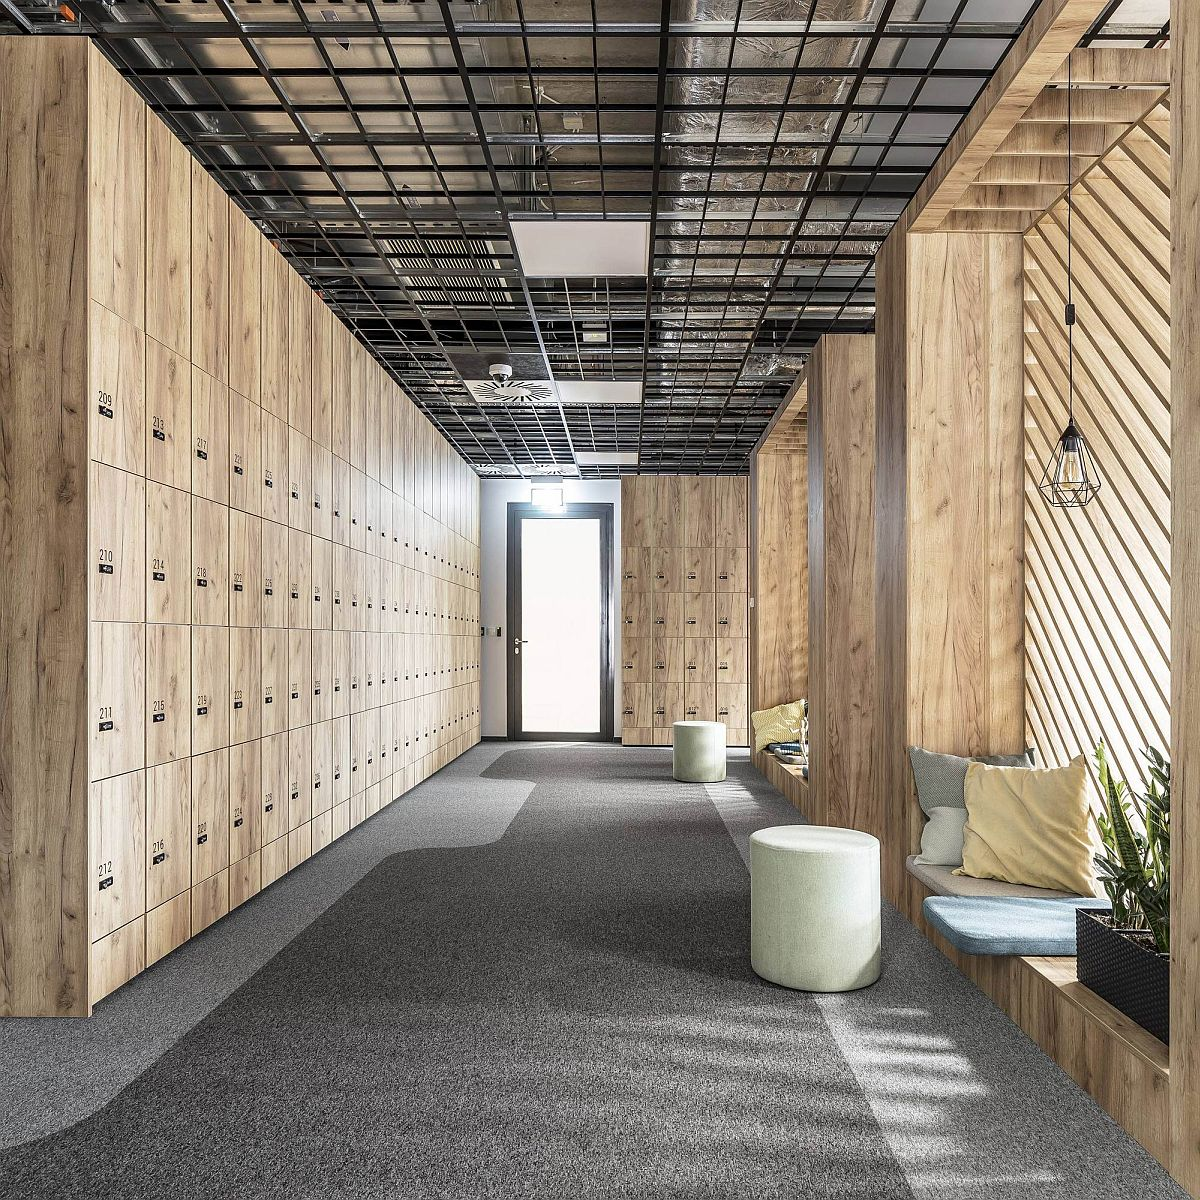 Series of wooden lockers at the entrance of the Poznan office space